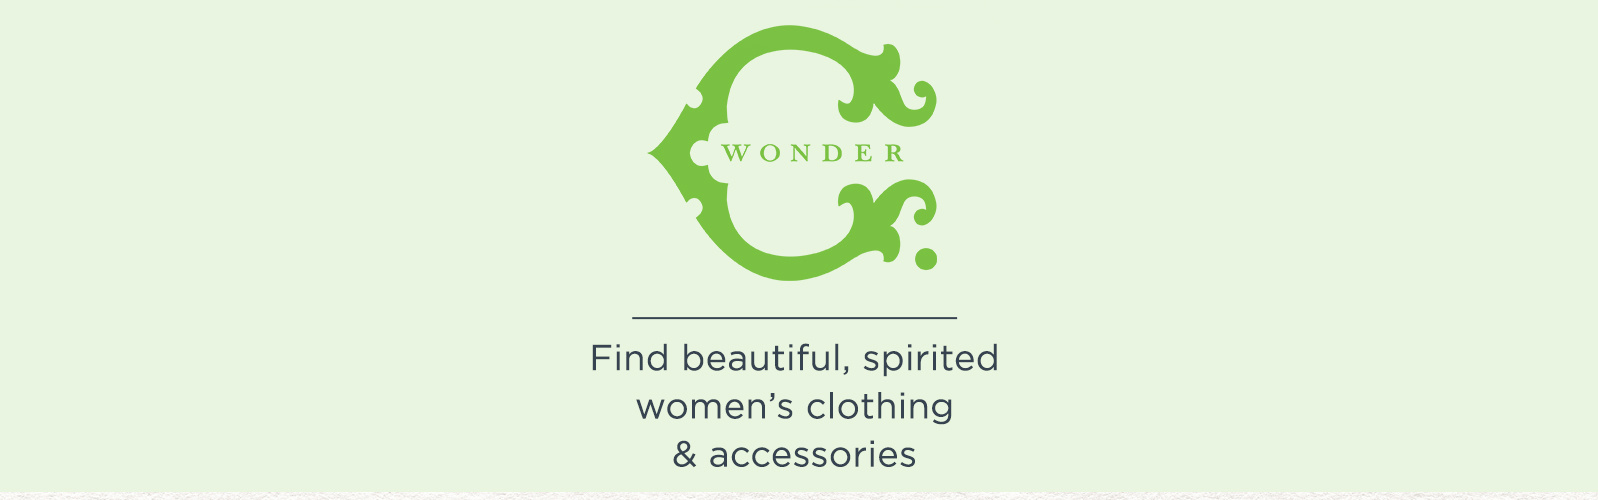 C. Wonder - Find beautiful, spirited women's clothing & accessories